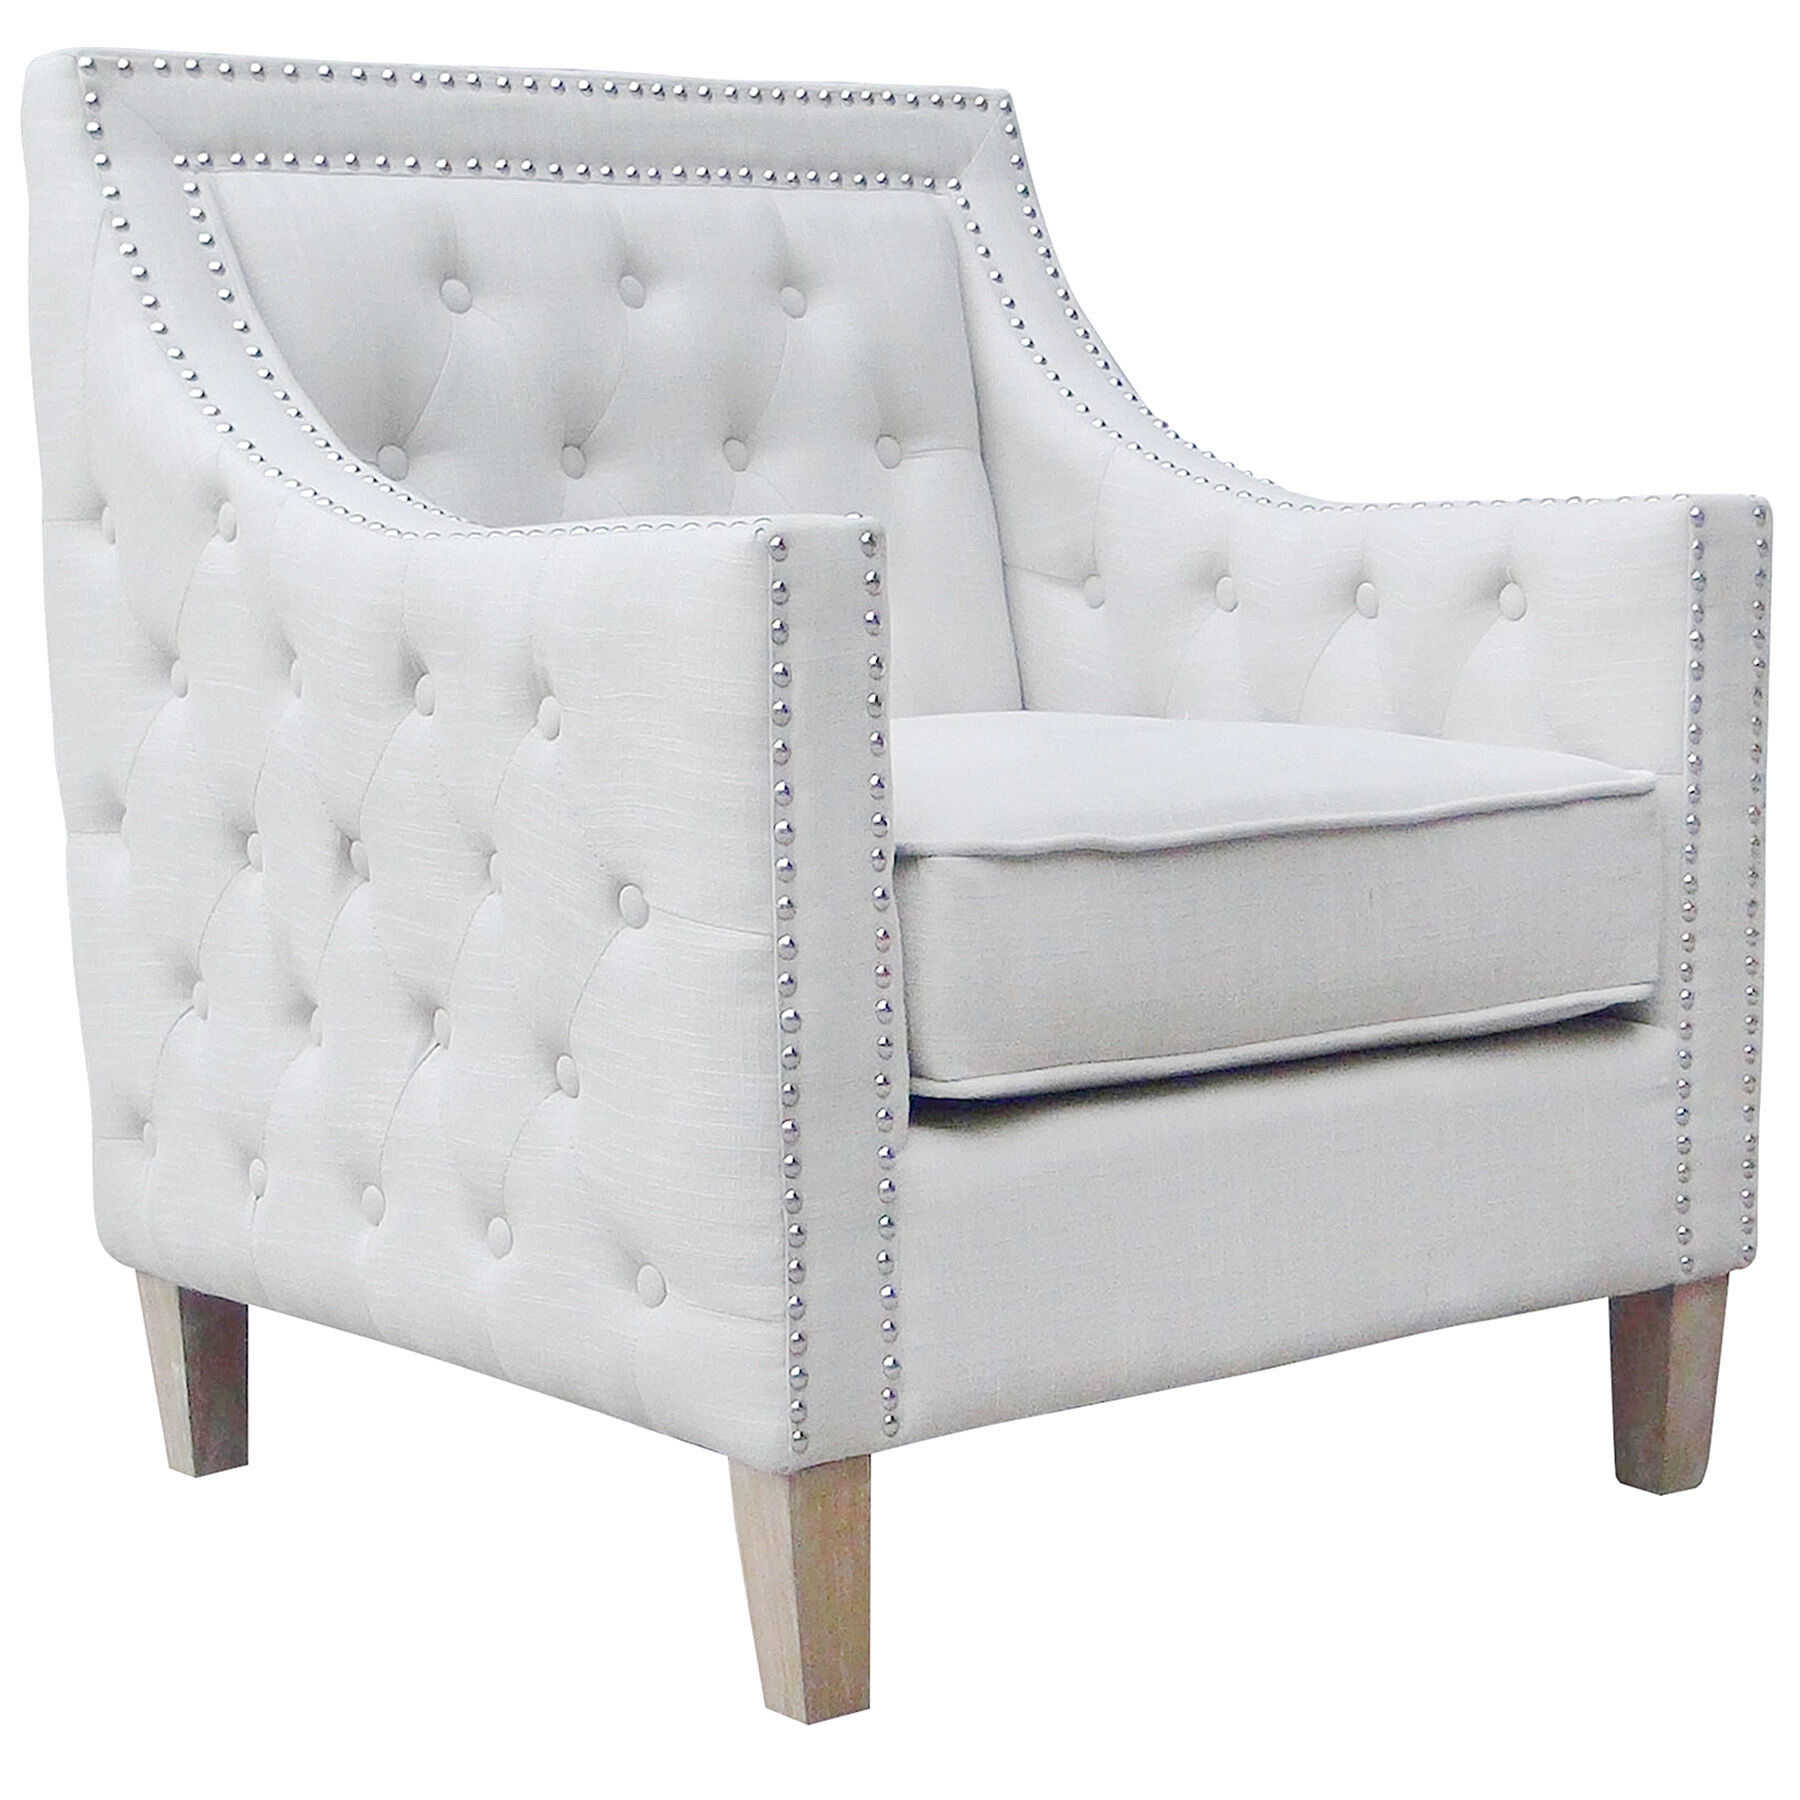 white club chairs chair cover elegance le mars iowa accent collection at home stores alexander